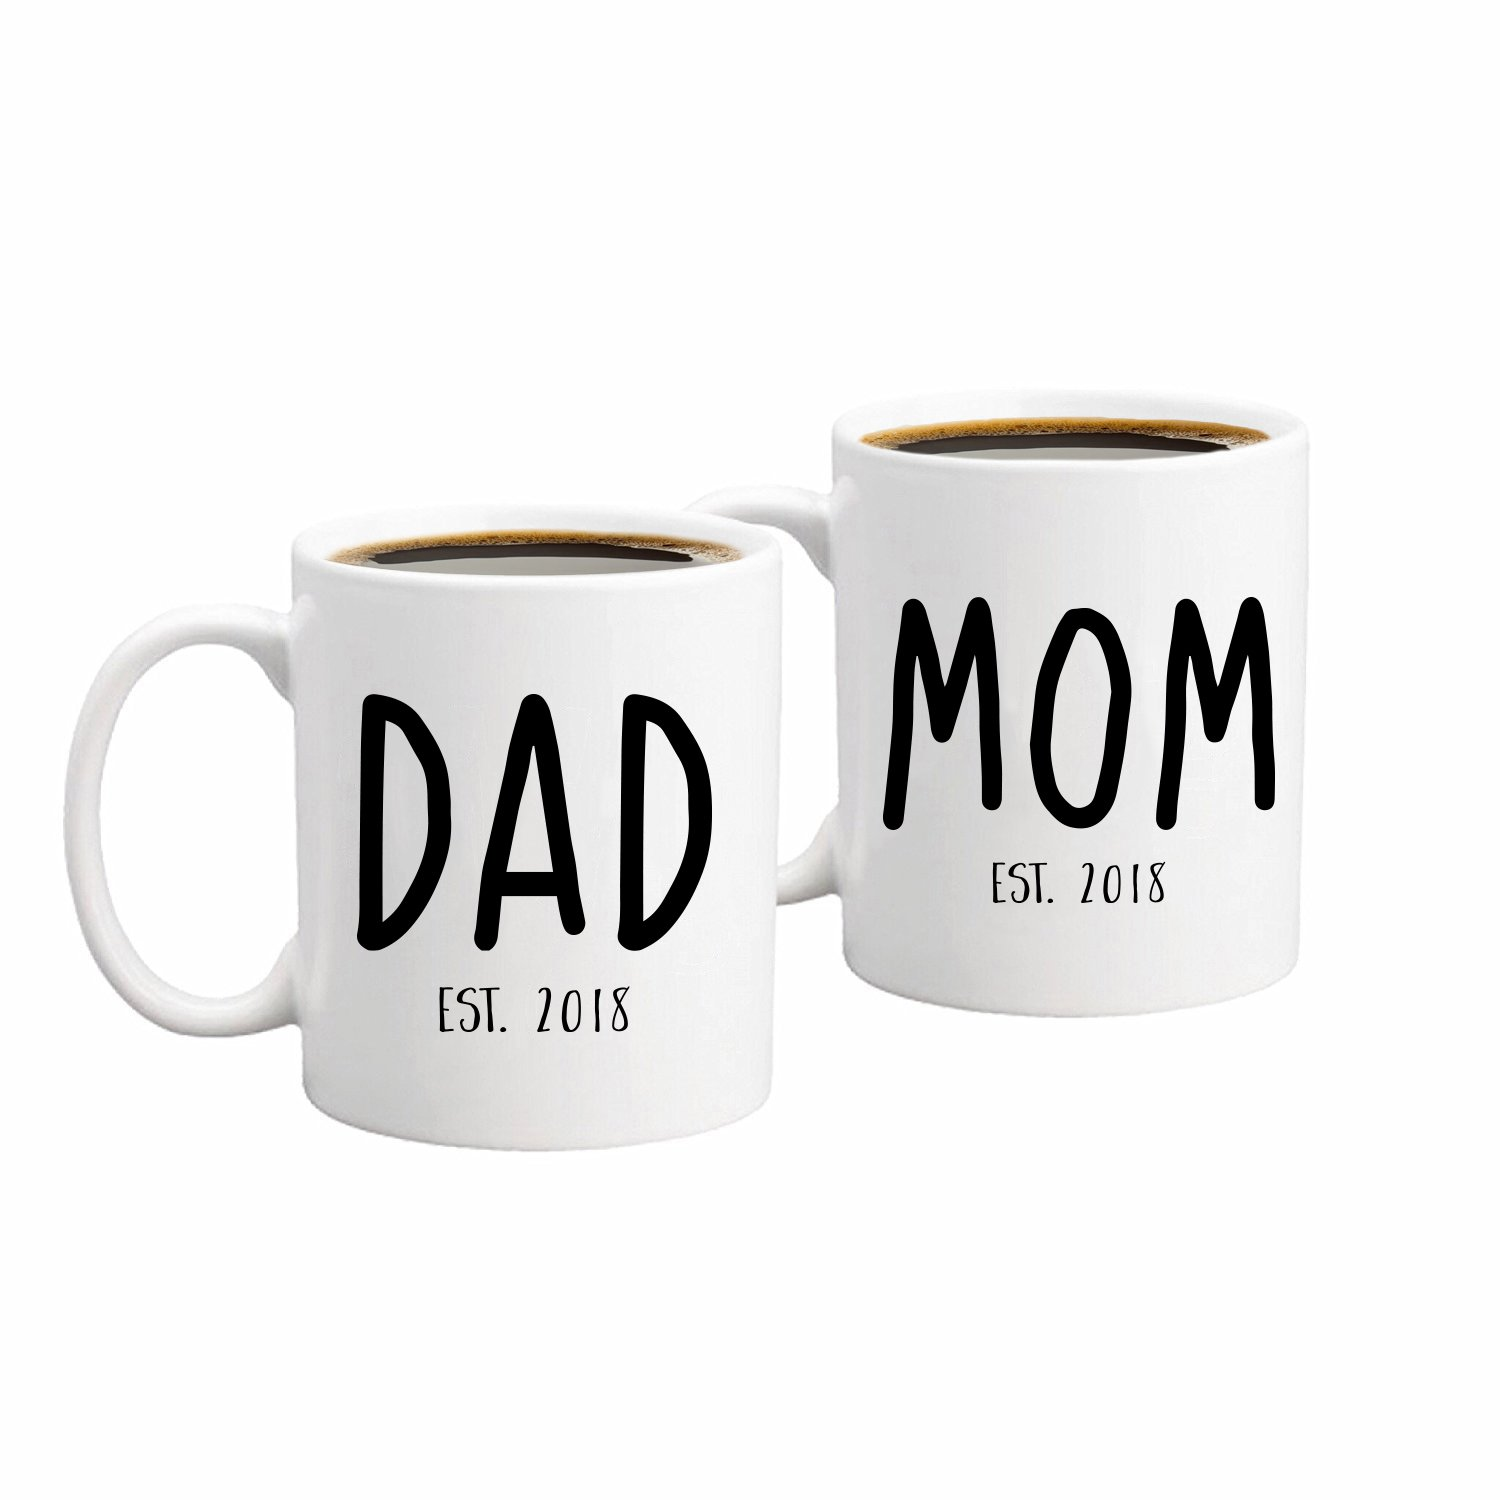 New Parents Pregnancy 2018 Announcement Coffee Mug Set 11oz - Unique Christmas Gift For Parents To Be - Perfect Present For Baby Showers - Mom and Dad Gift